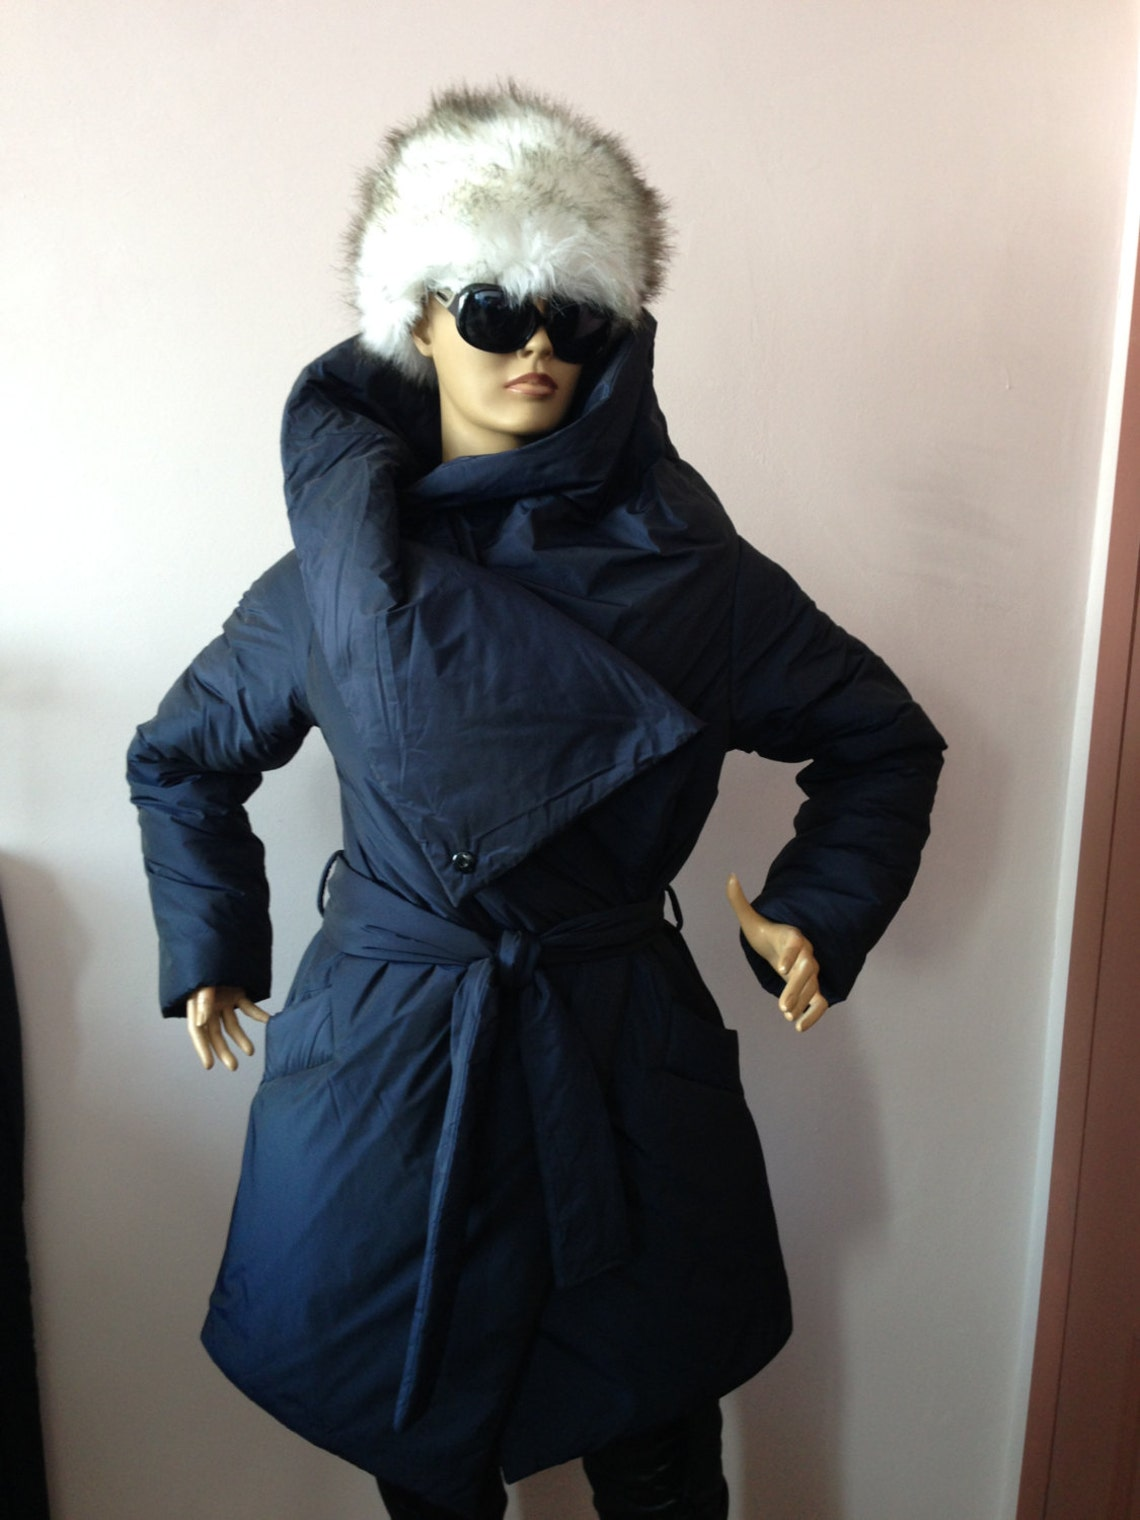 Warm Winter Coat,womens Wrap Down Coat/ Womens Jacket/ Puffer Atmosphere Overcoat In Blue/ Quilted Coat